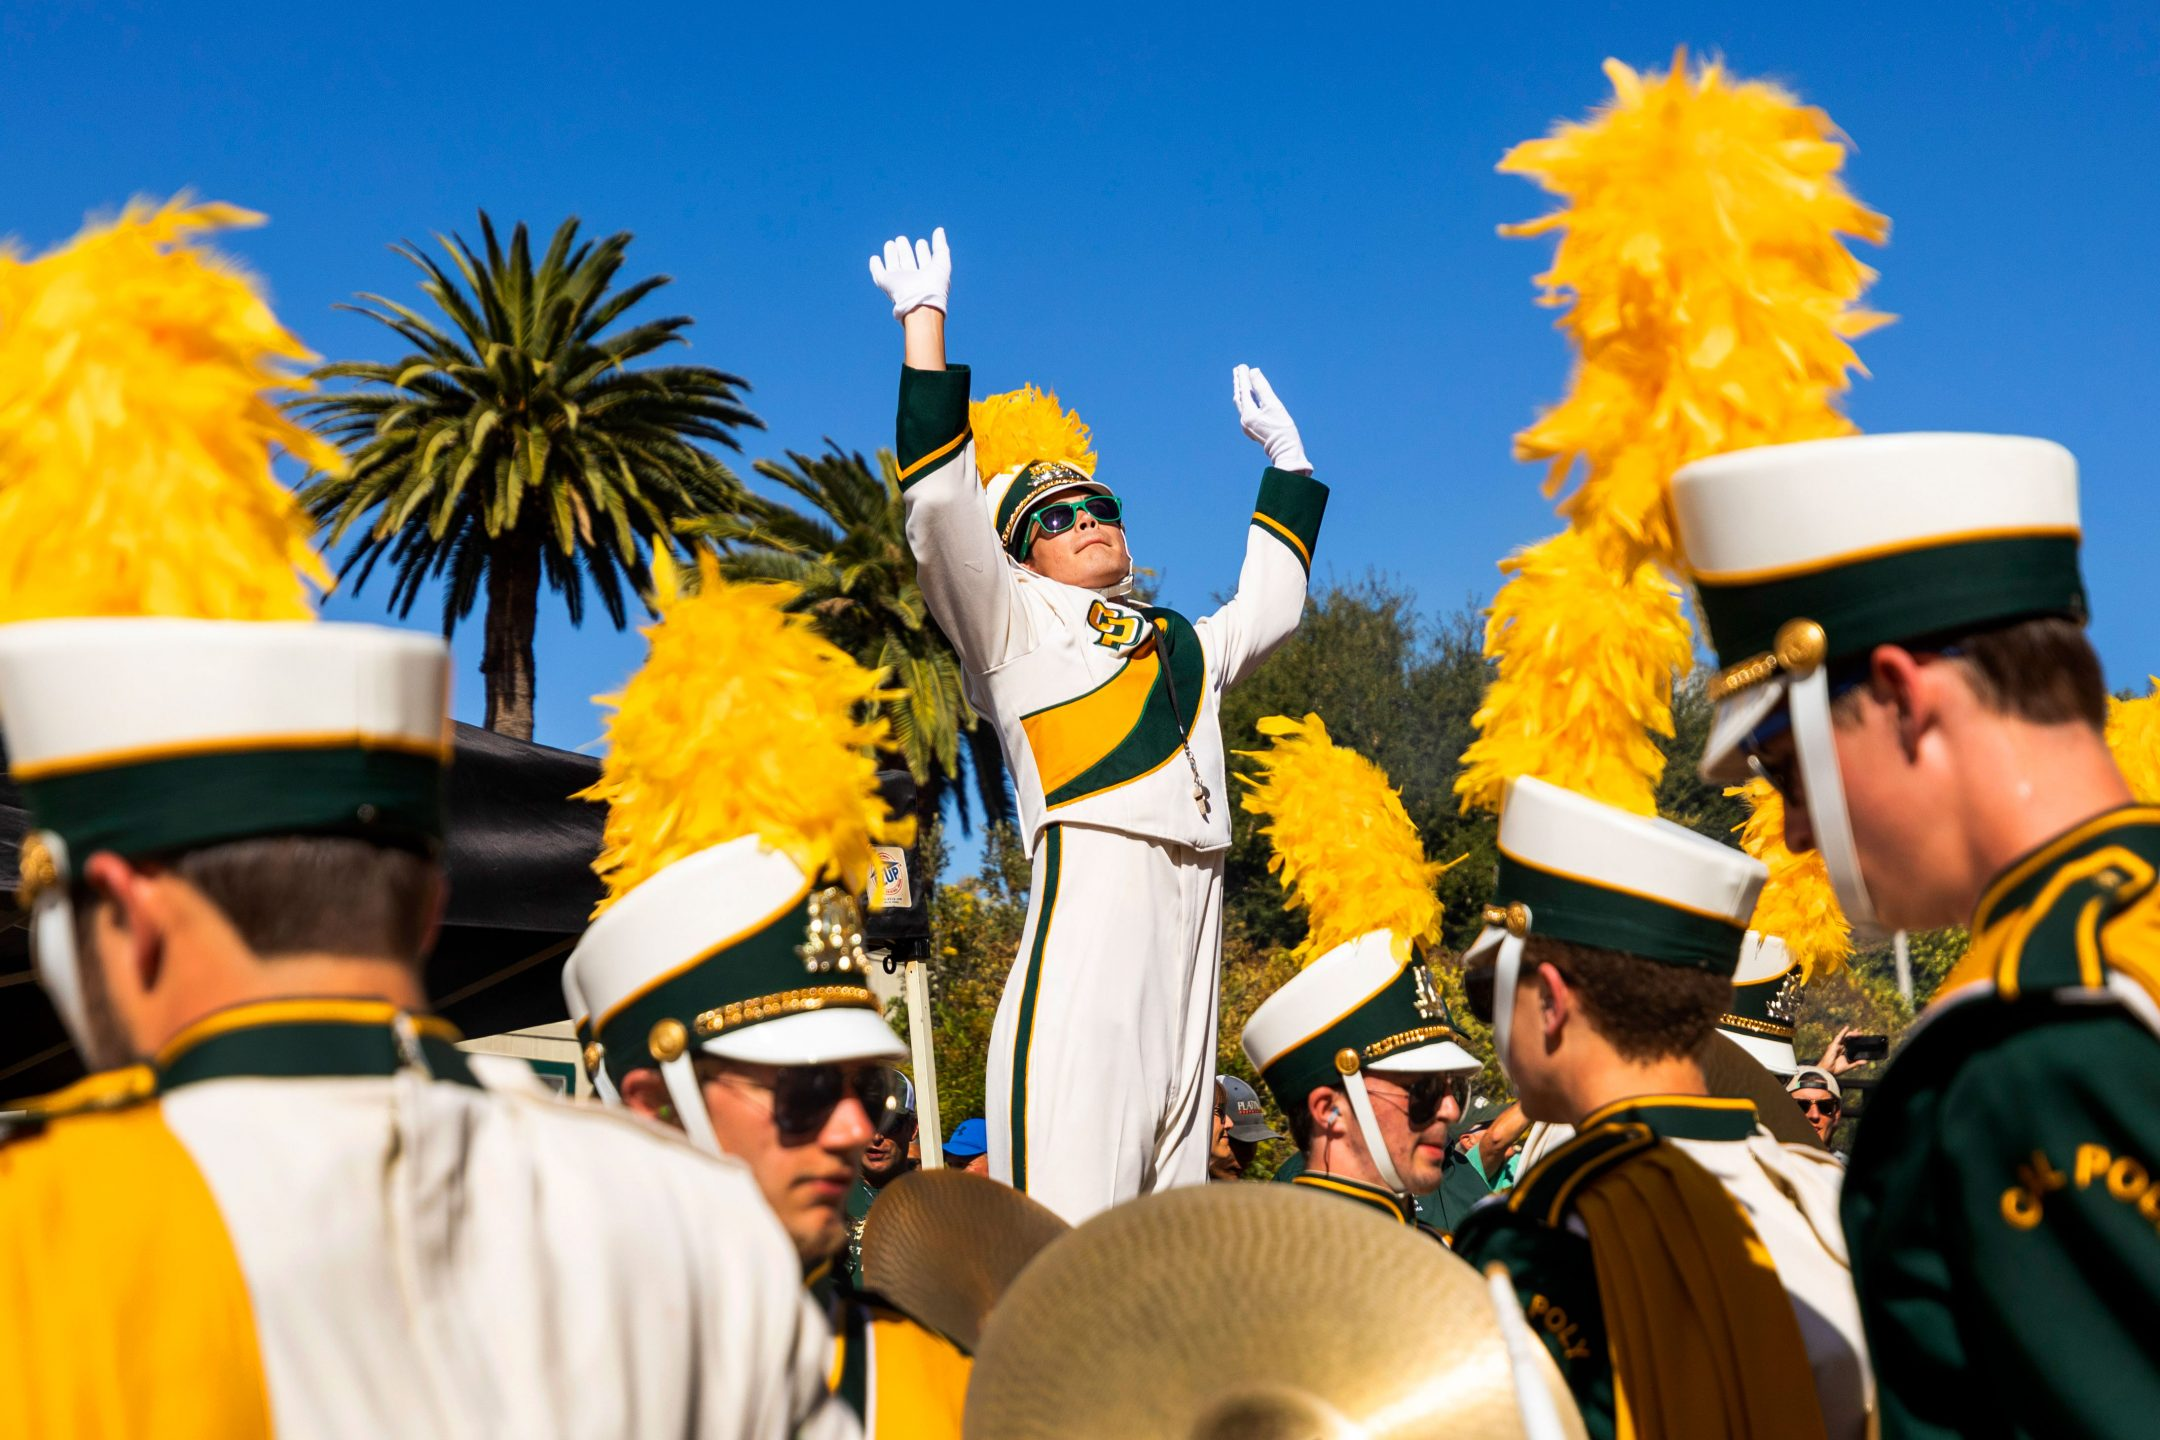 A Cal Poly drum major conducts the marching band at a football game tailgate